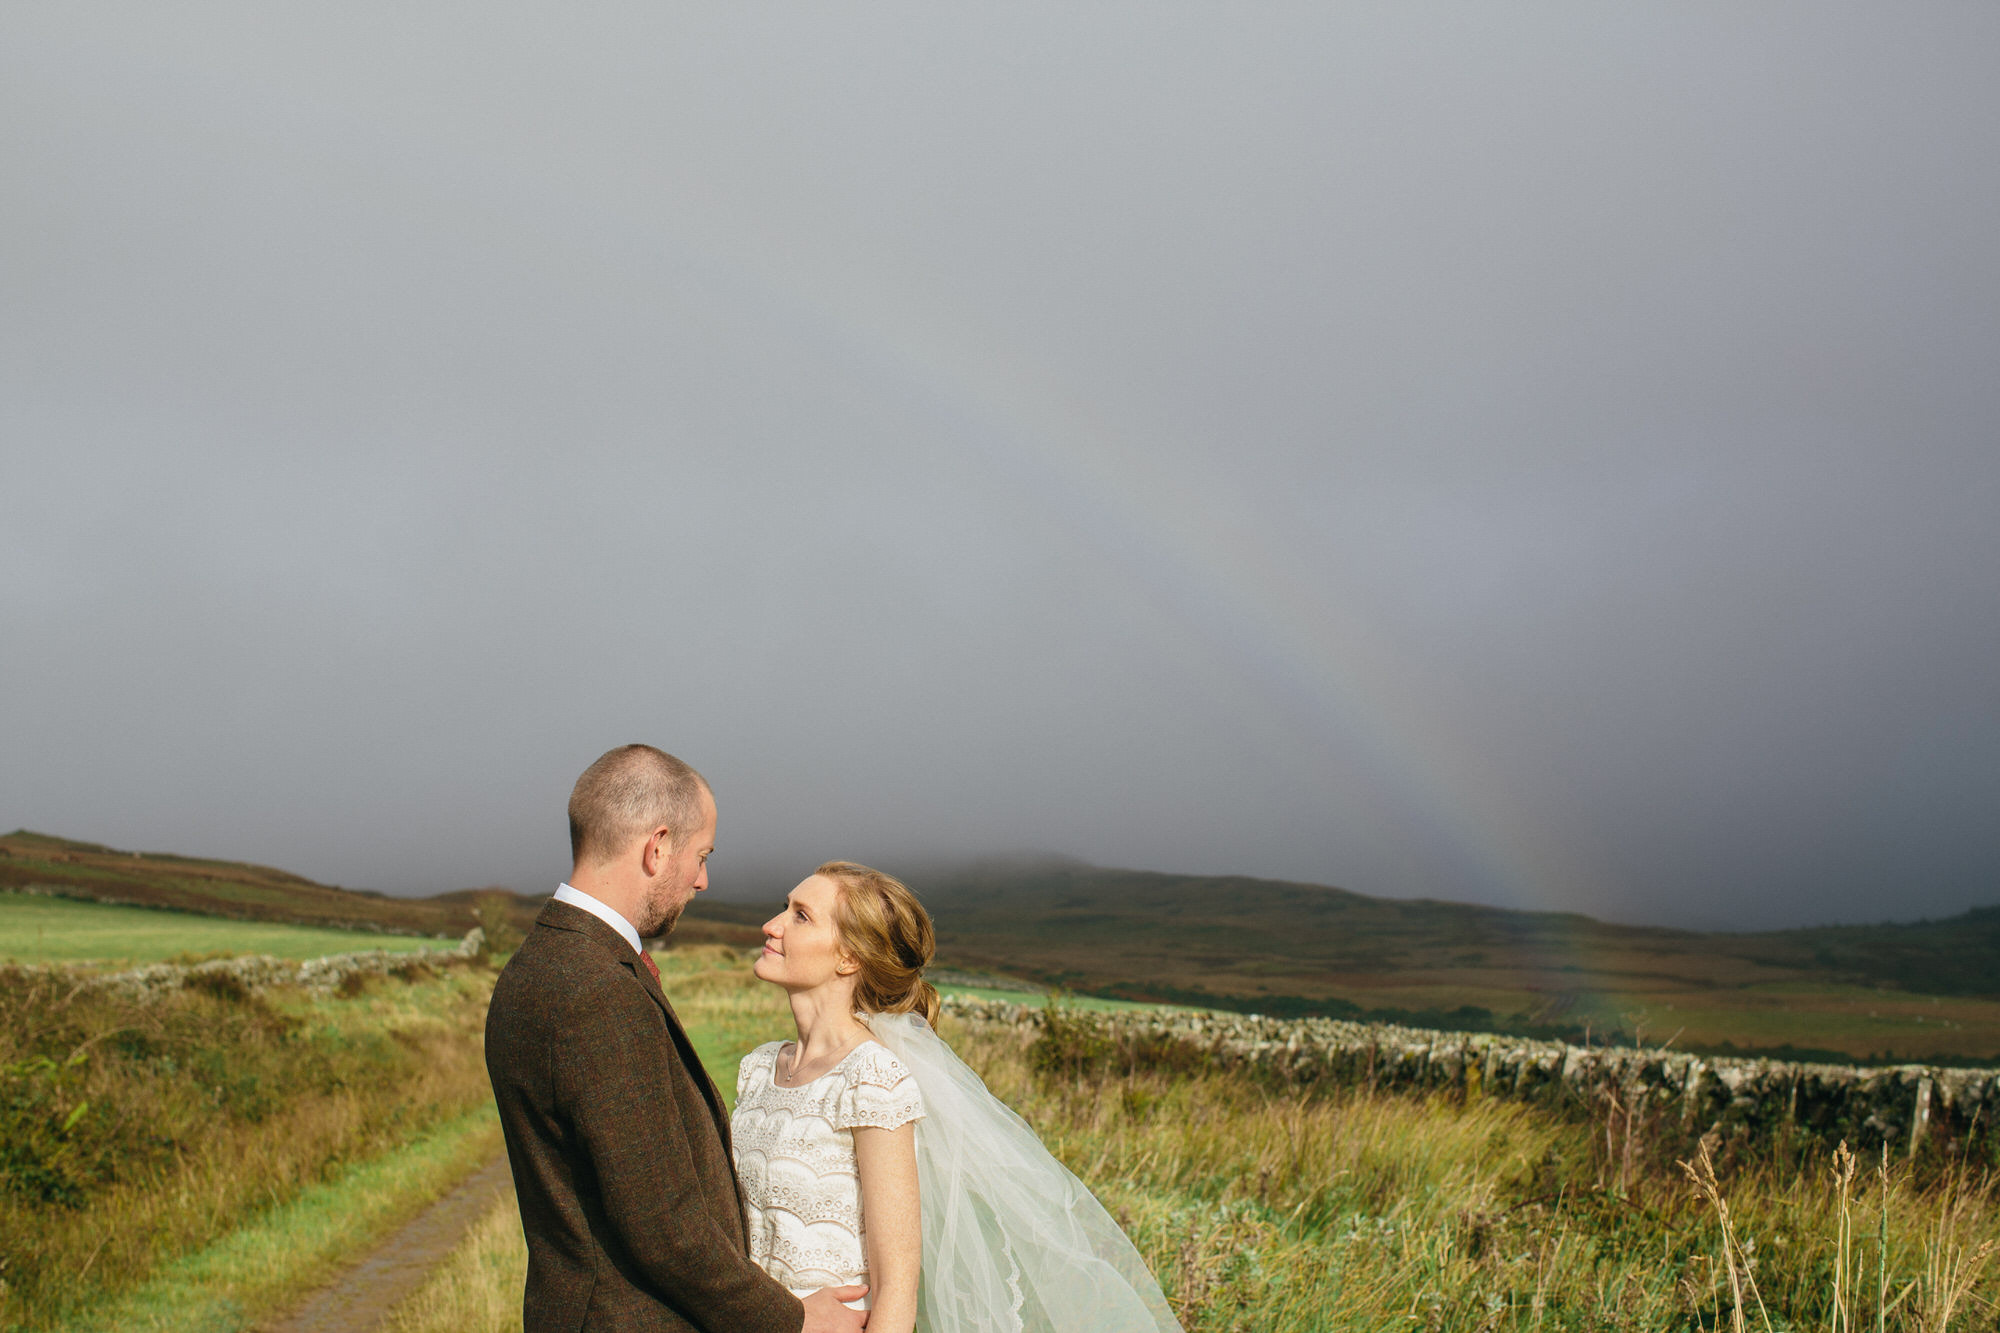 Alternative Natural Quirky Wedding Photographs UK Scotland 128.jpg